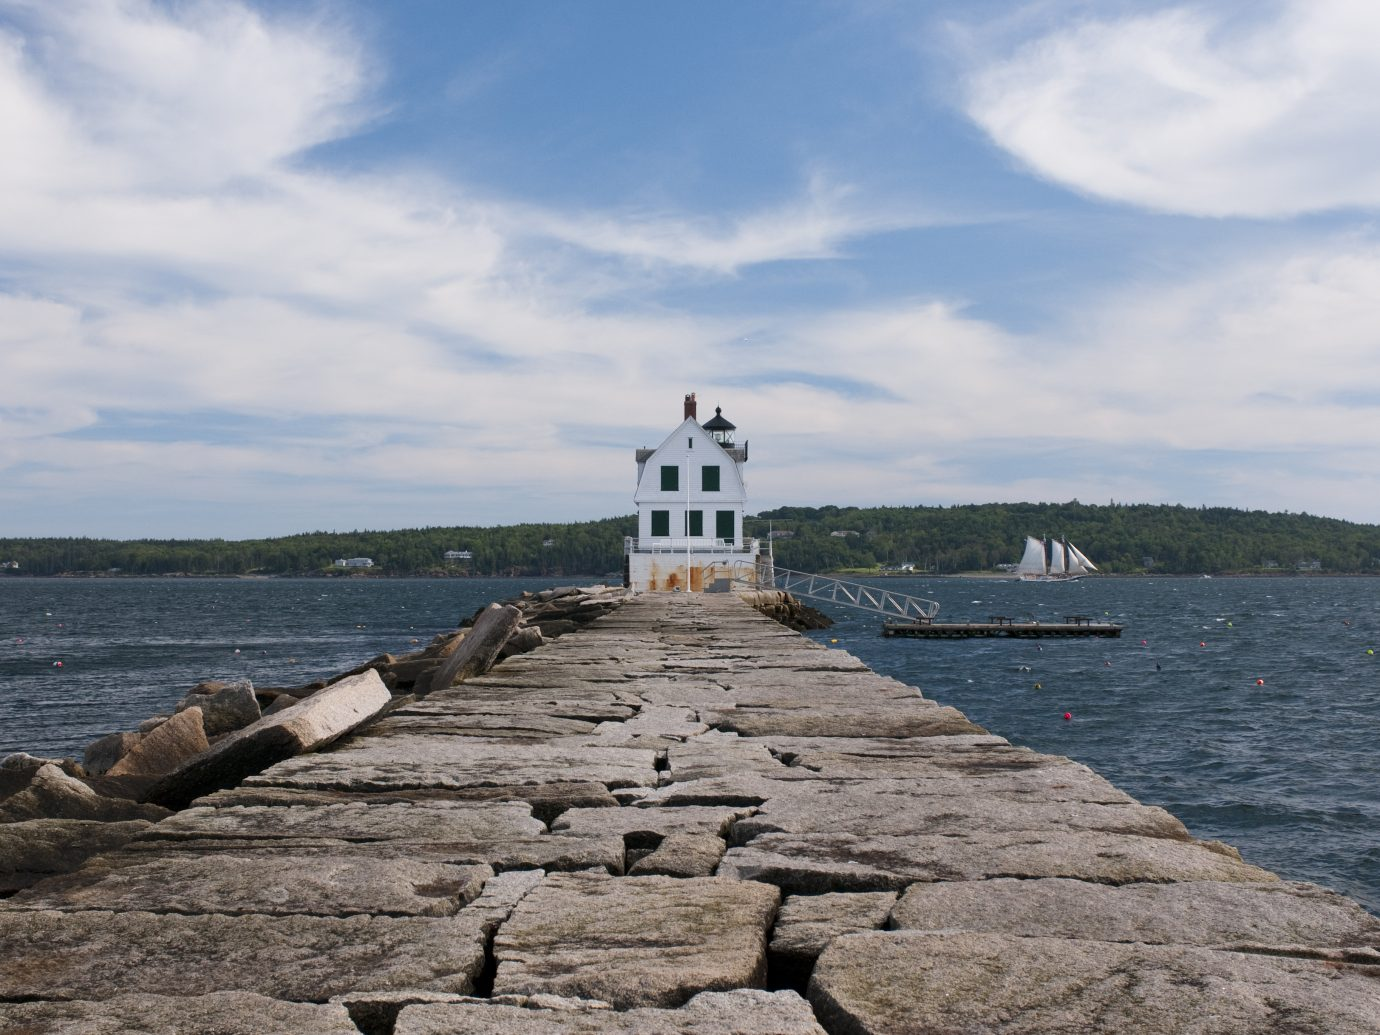 A view of the Rockland Breakwater Lighthouse seen from the breakwater on Jameson Point in Rockland, Maine.